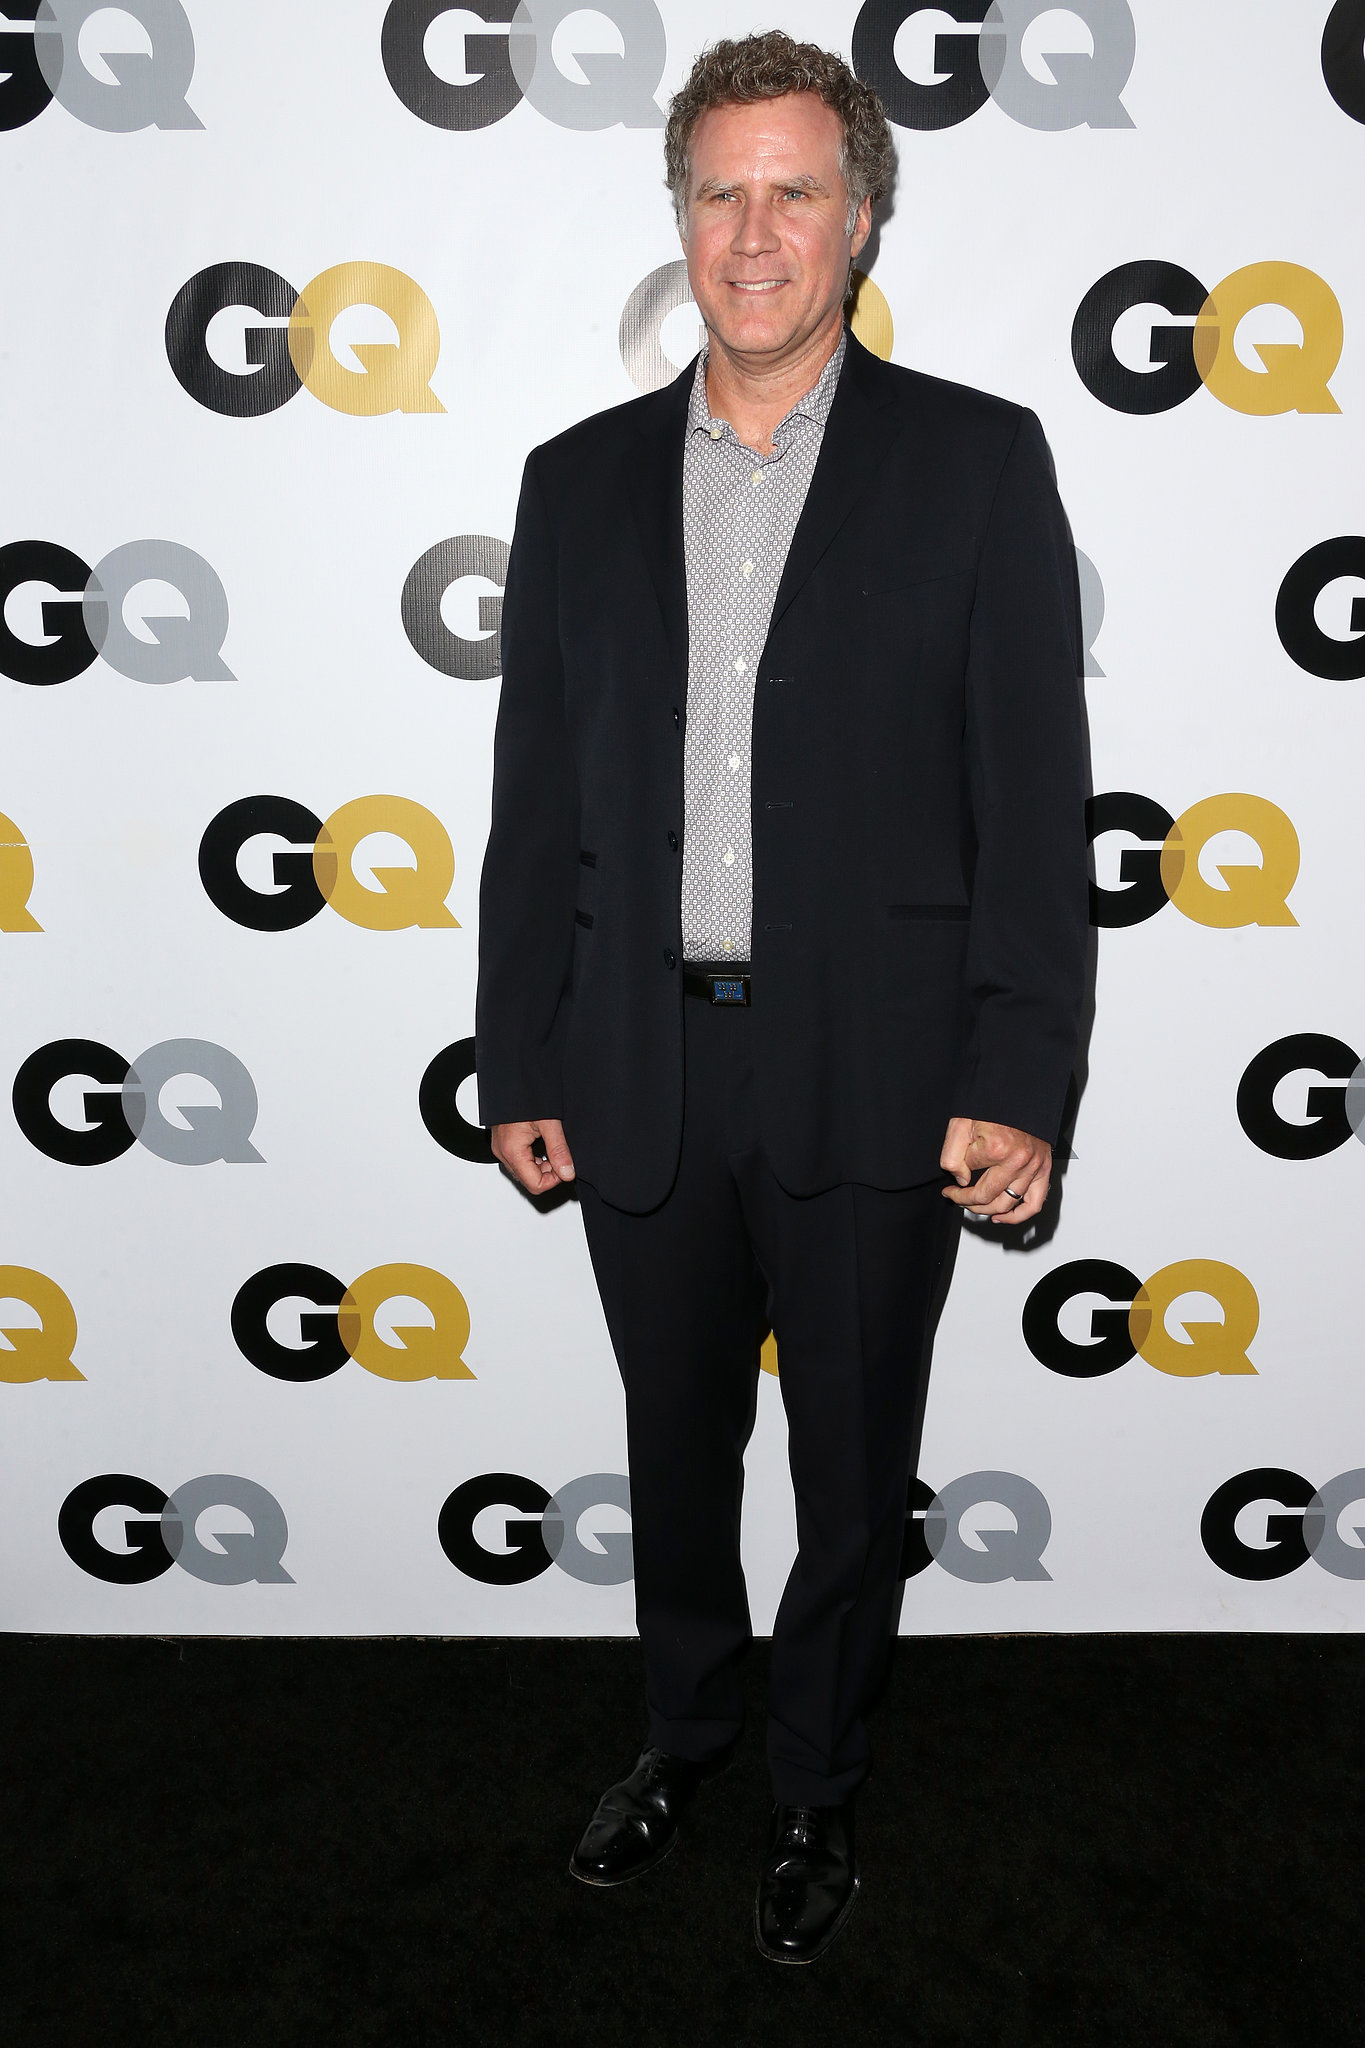 Will Ferrell arrived for the GQ Men of the Year party.